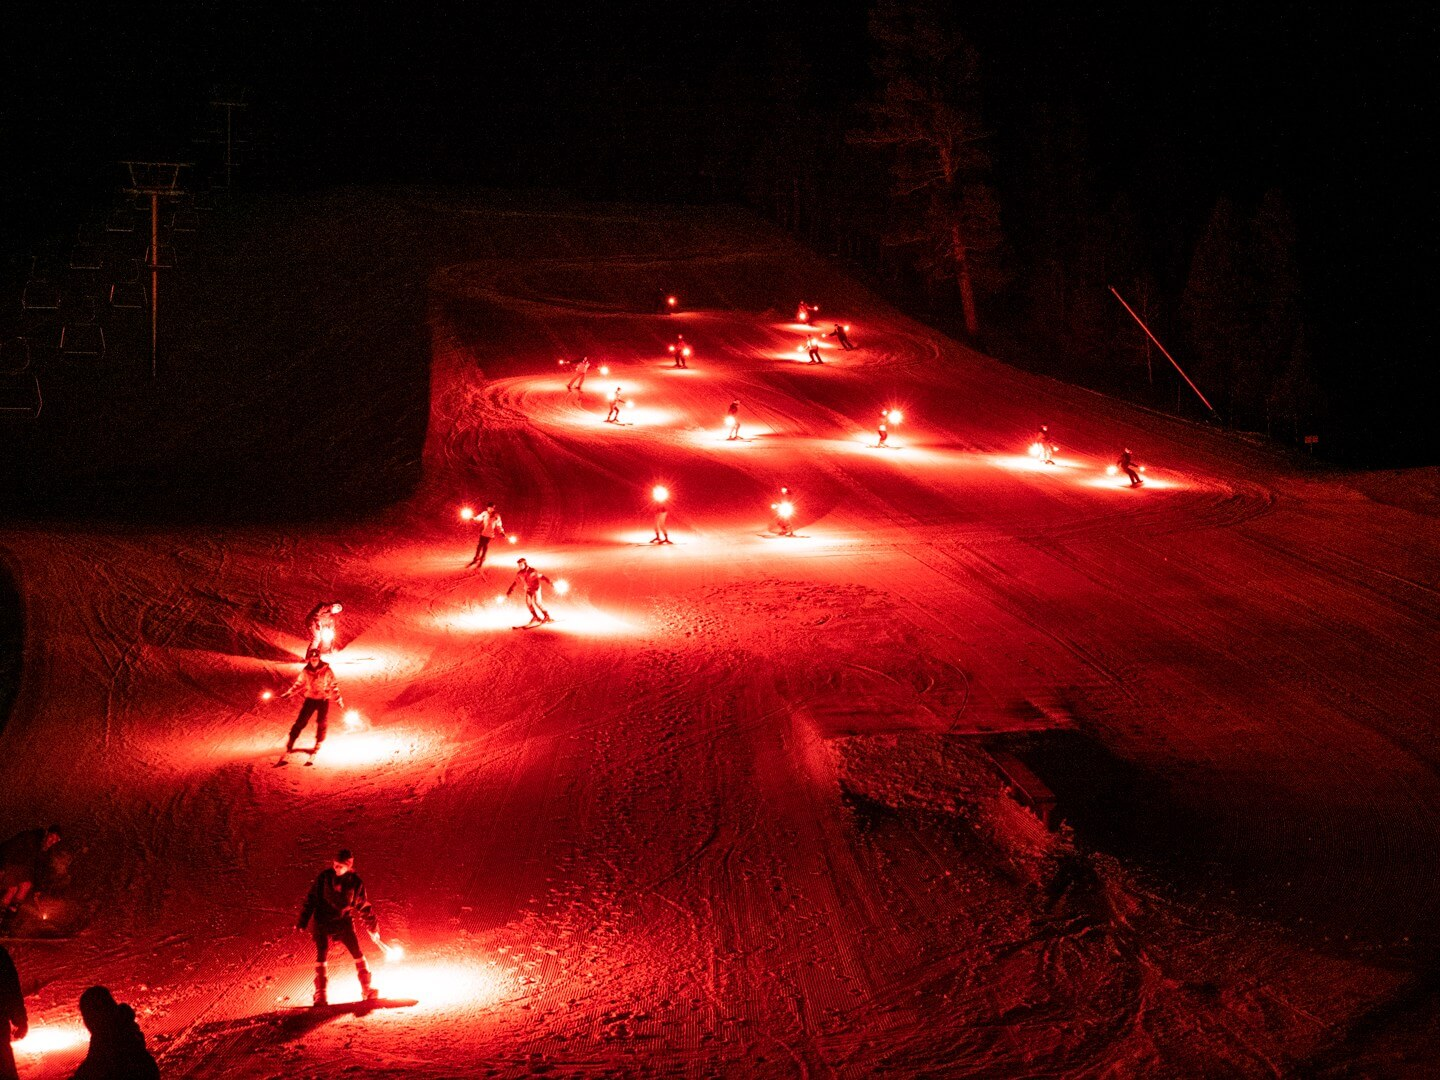 Torchlight Parade at Red River New Mexico